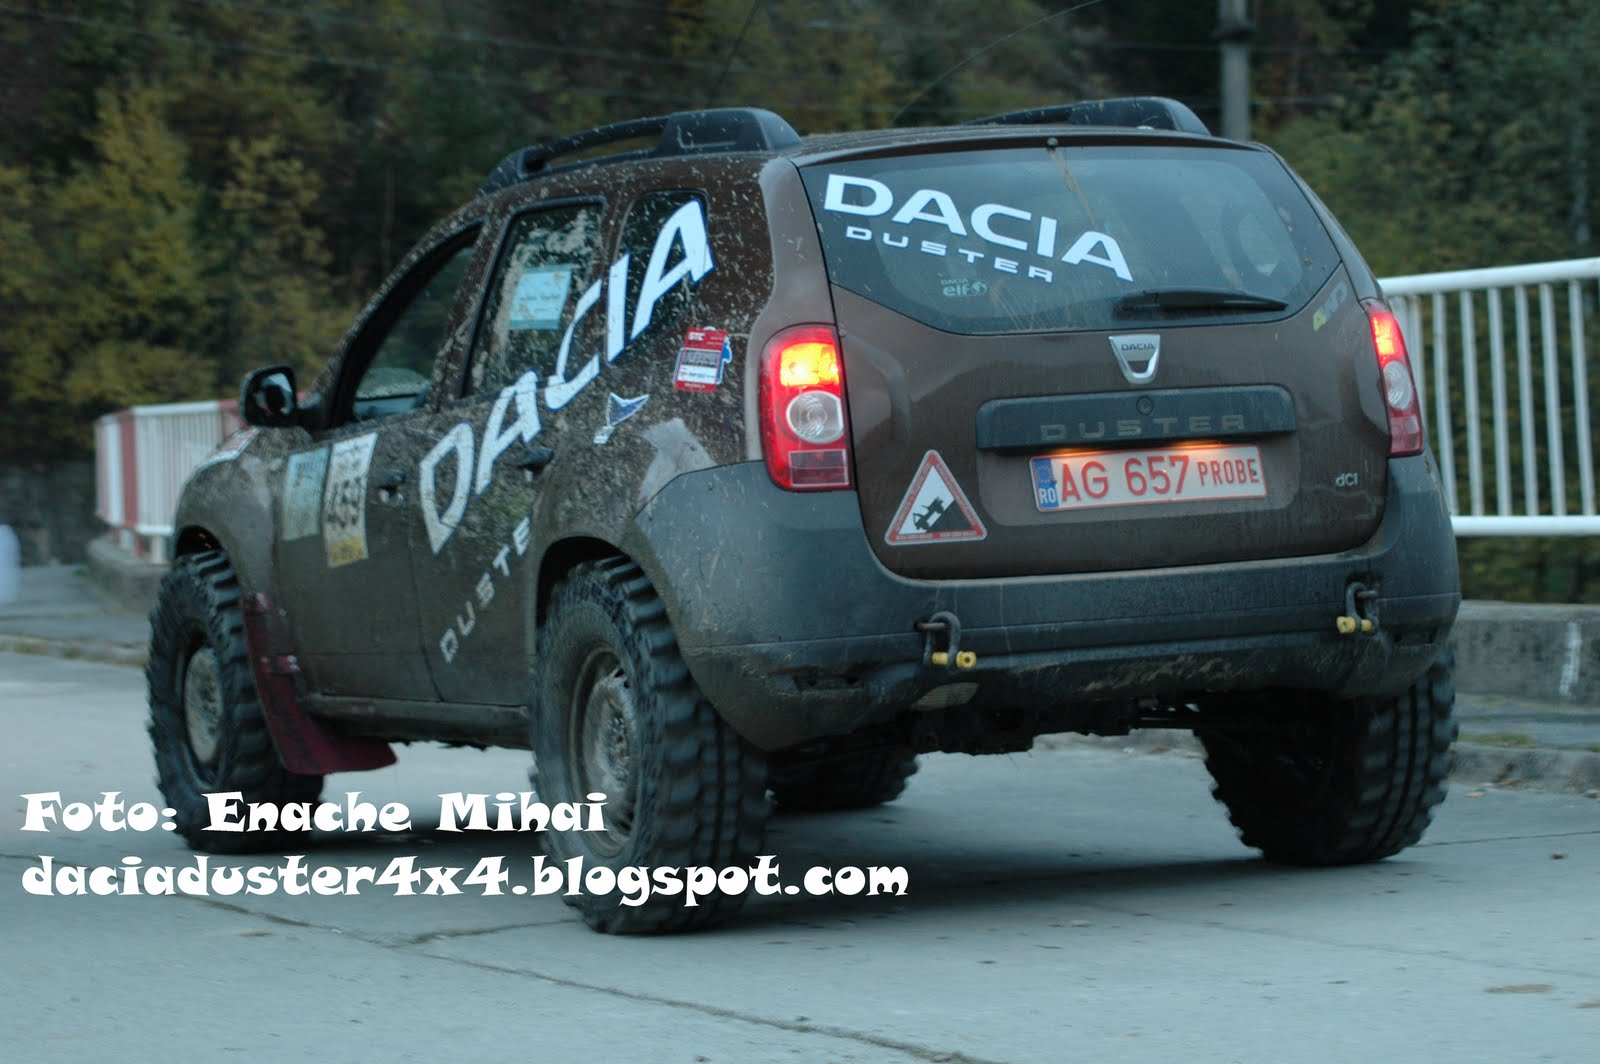 dacia duster off road testi s zde sayfa 8 gezenb l r. Black Bedroom Furniture Sets. Home Design Ideas